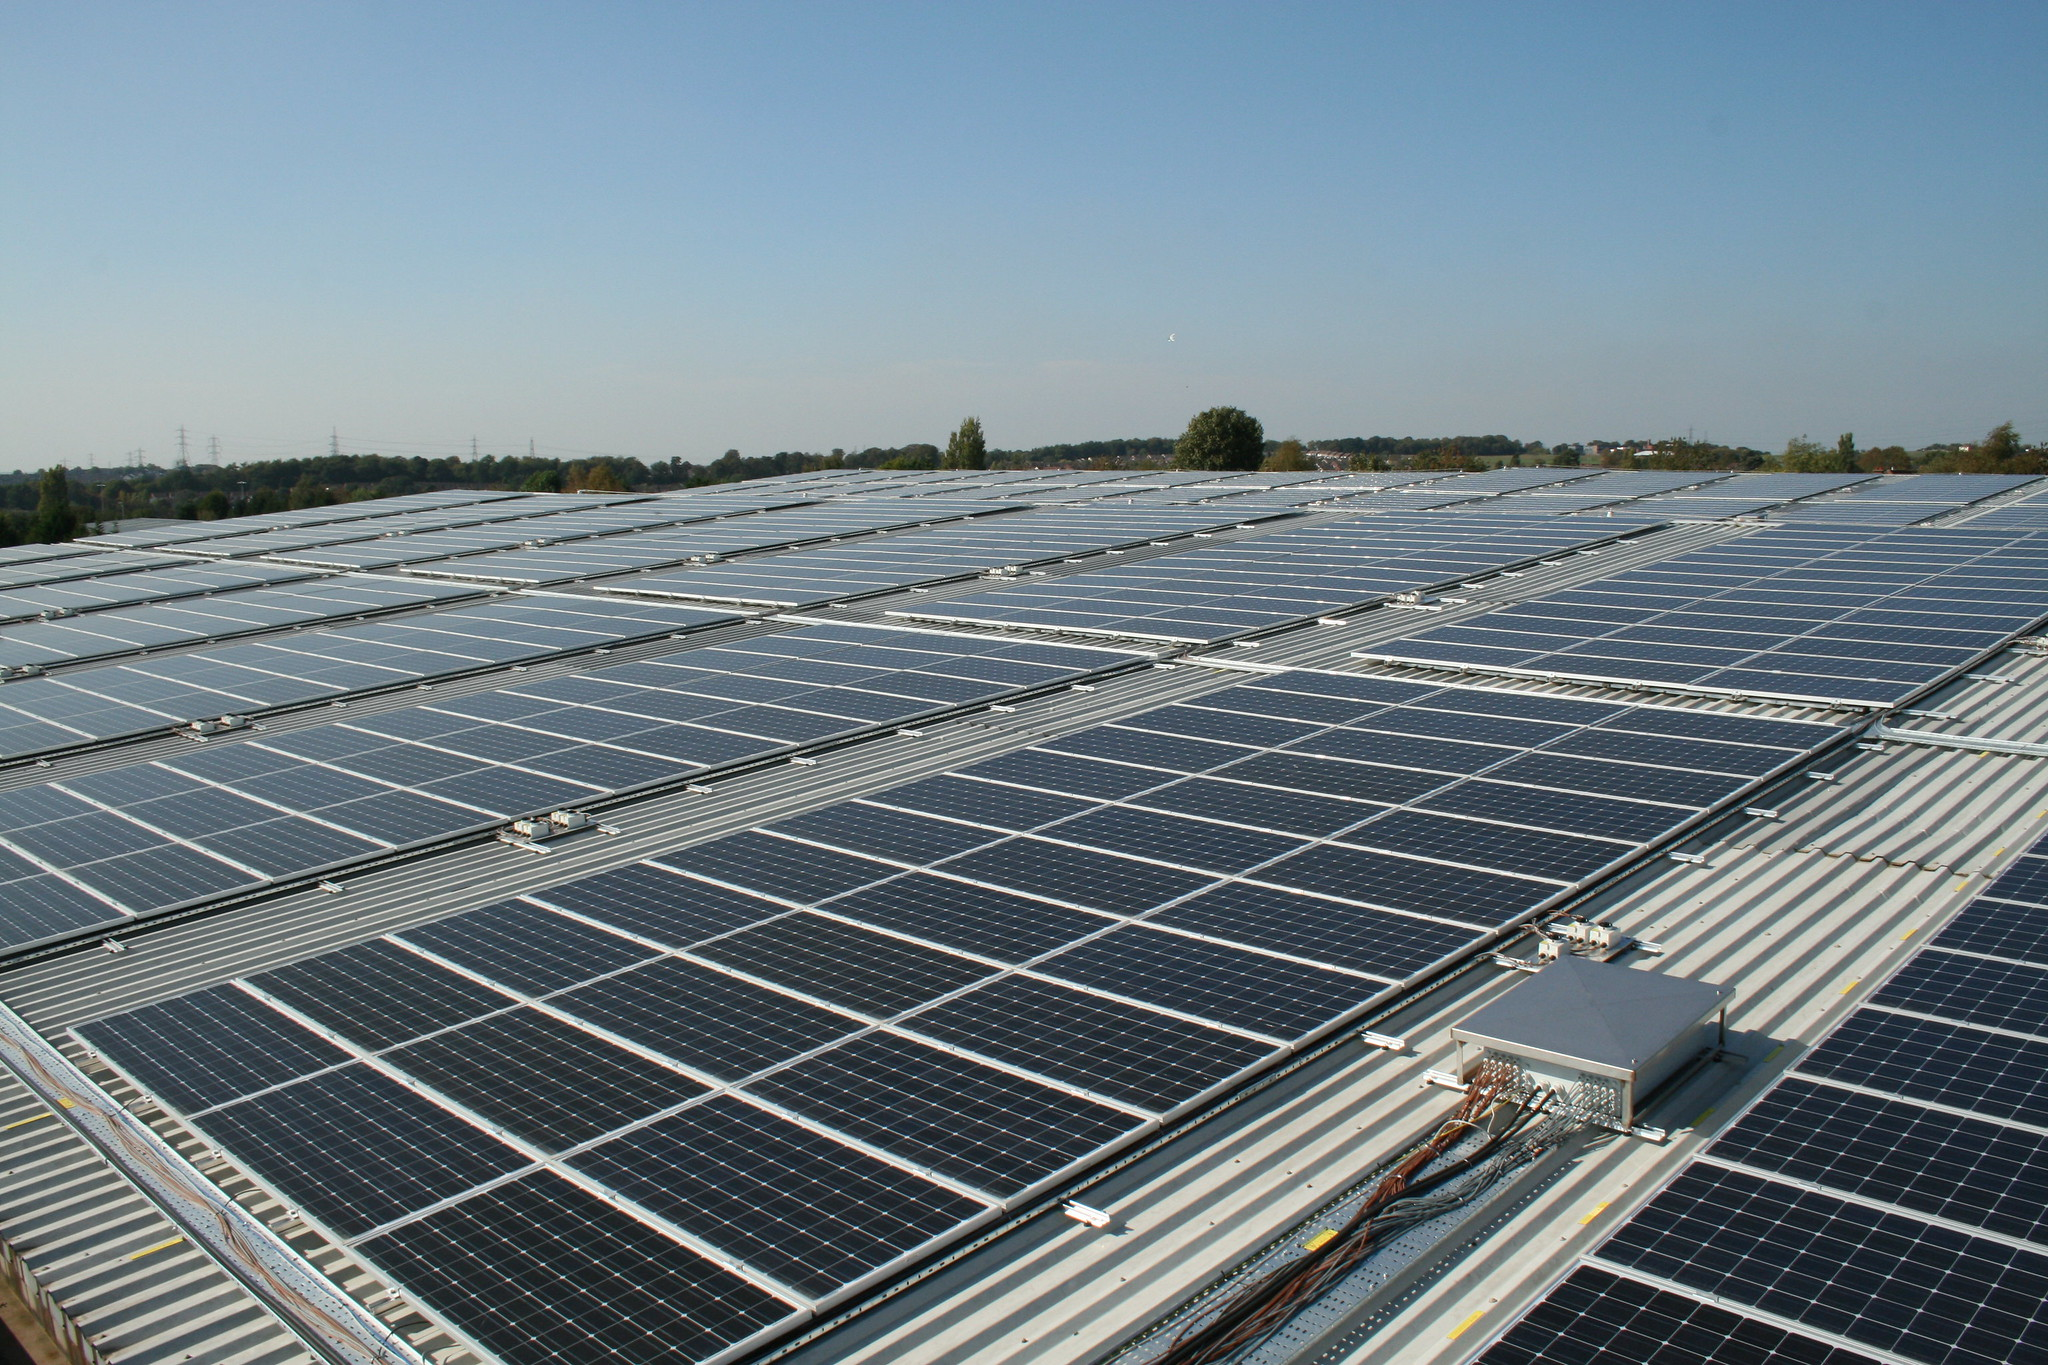 Adoption of rooftop solar by industries or big consumers like universities can be very effective in bringing a positive behavioural change. Photo by h080/Flickr.